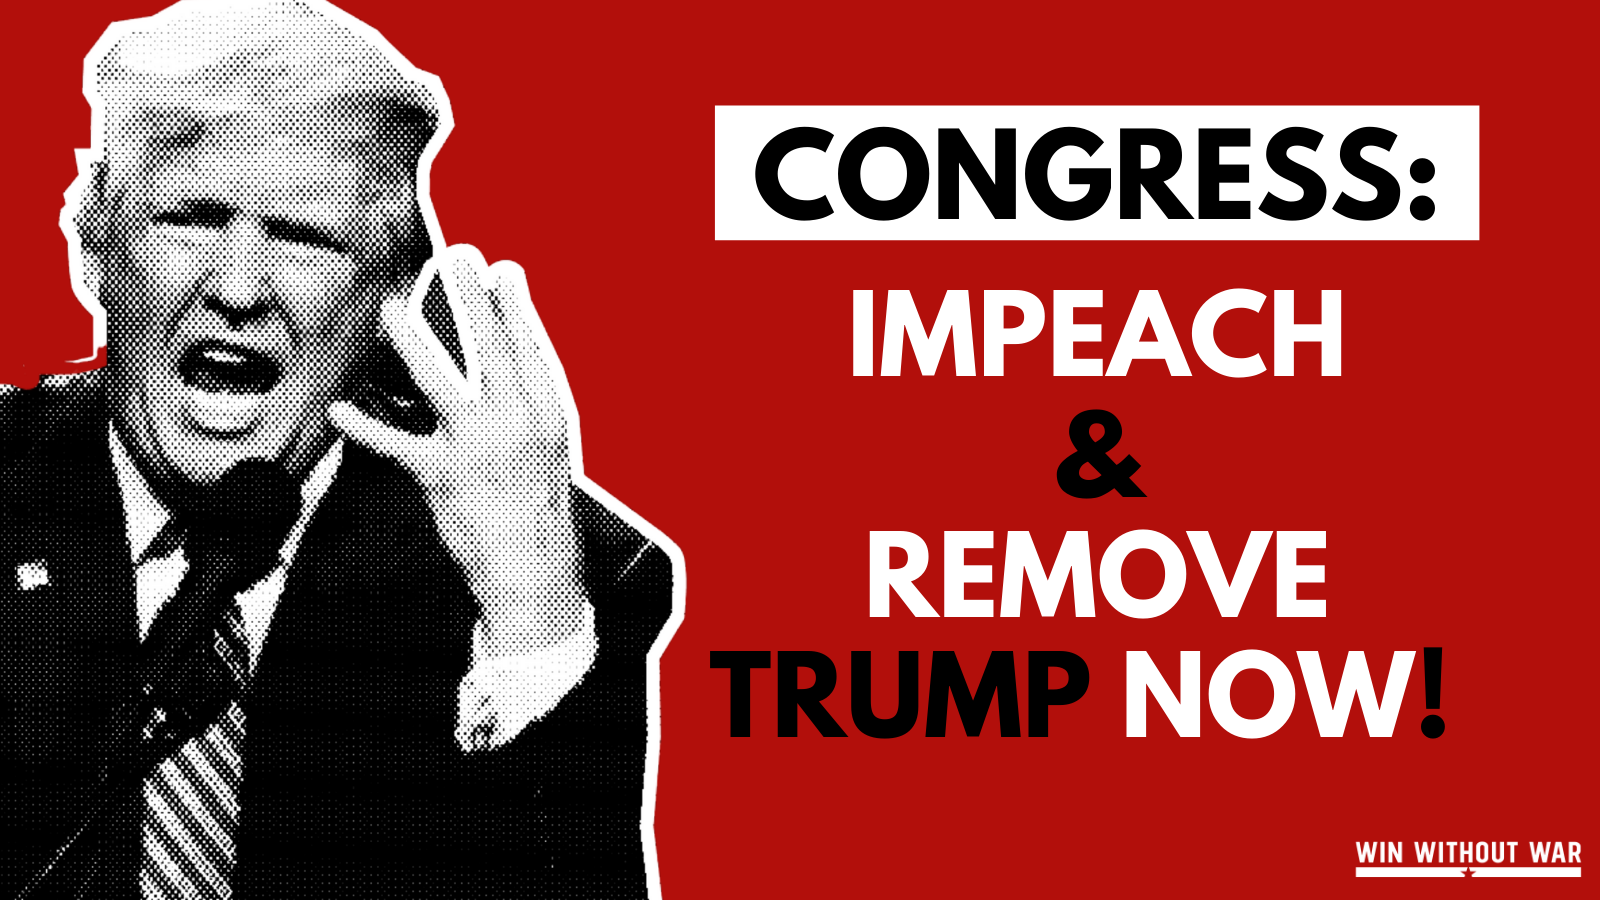 Congress Must Impeach & Remove Donald Trump